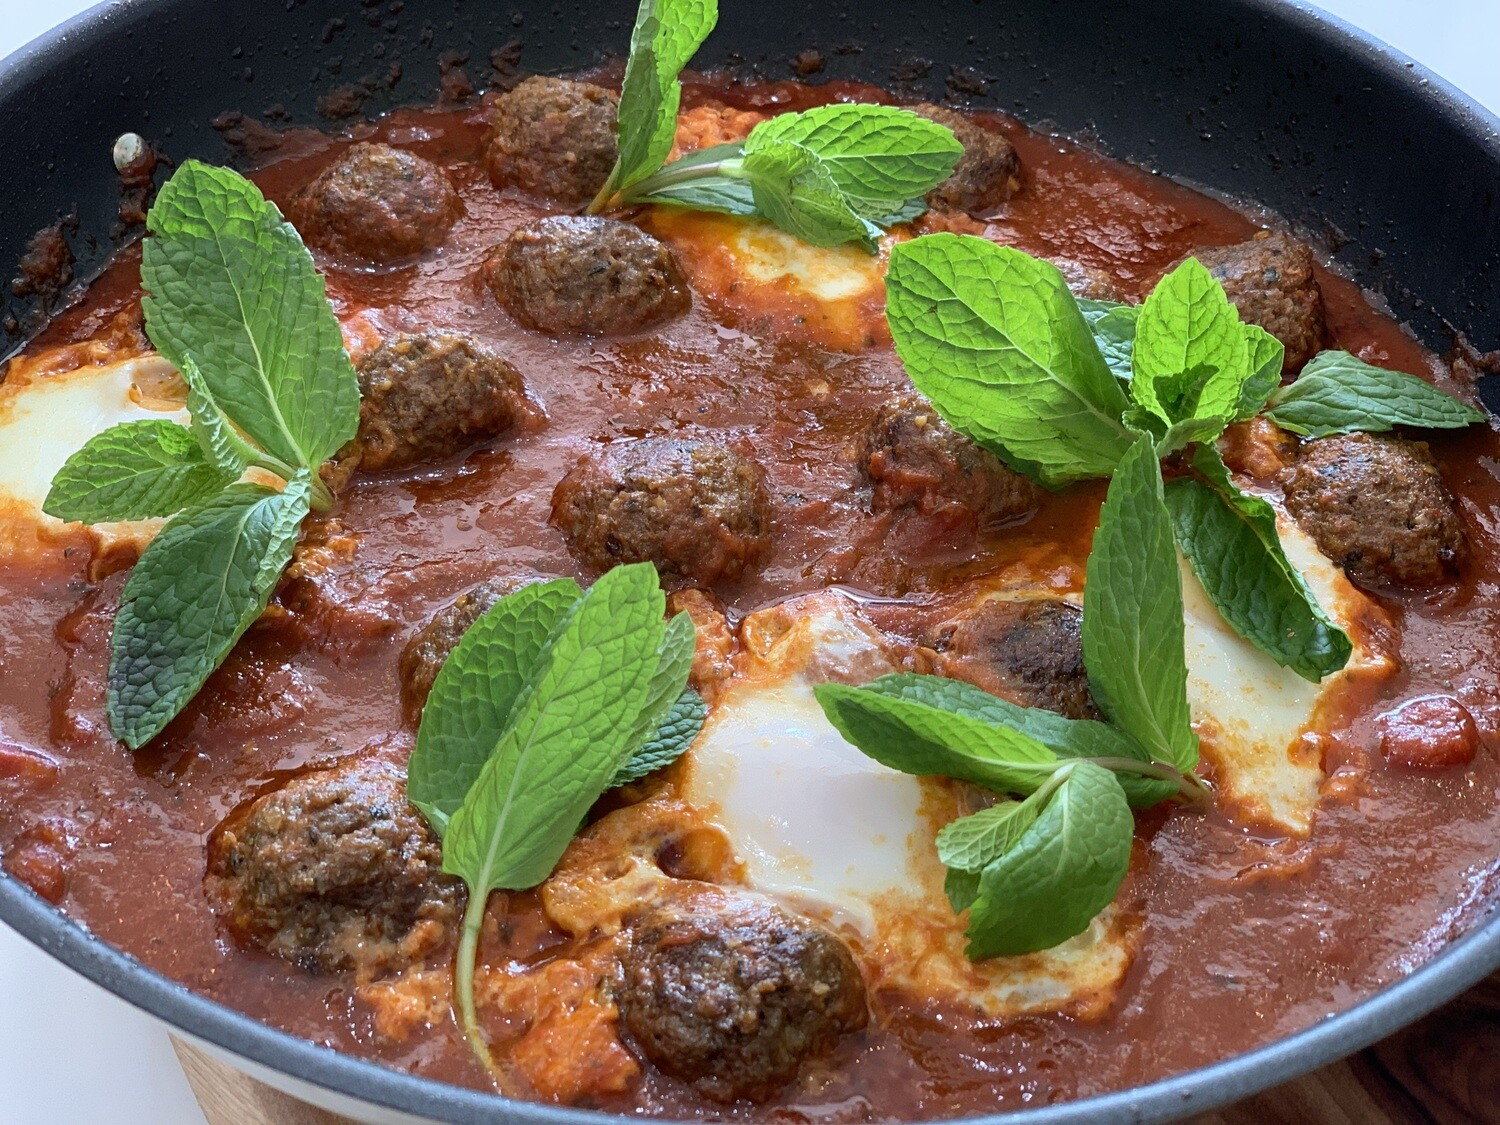 Moroccan Beef Meatballs in Fragrant Tomato Sauce (Serves 3-4)